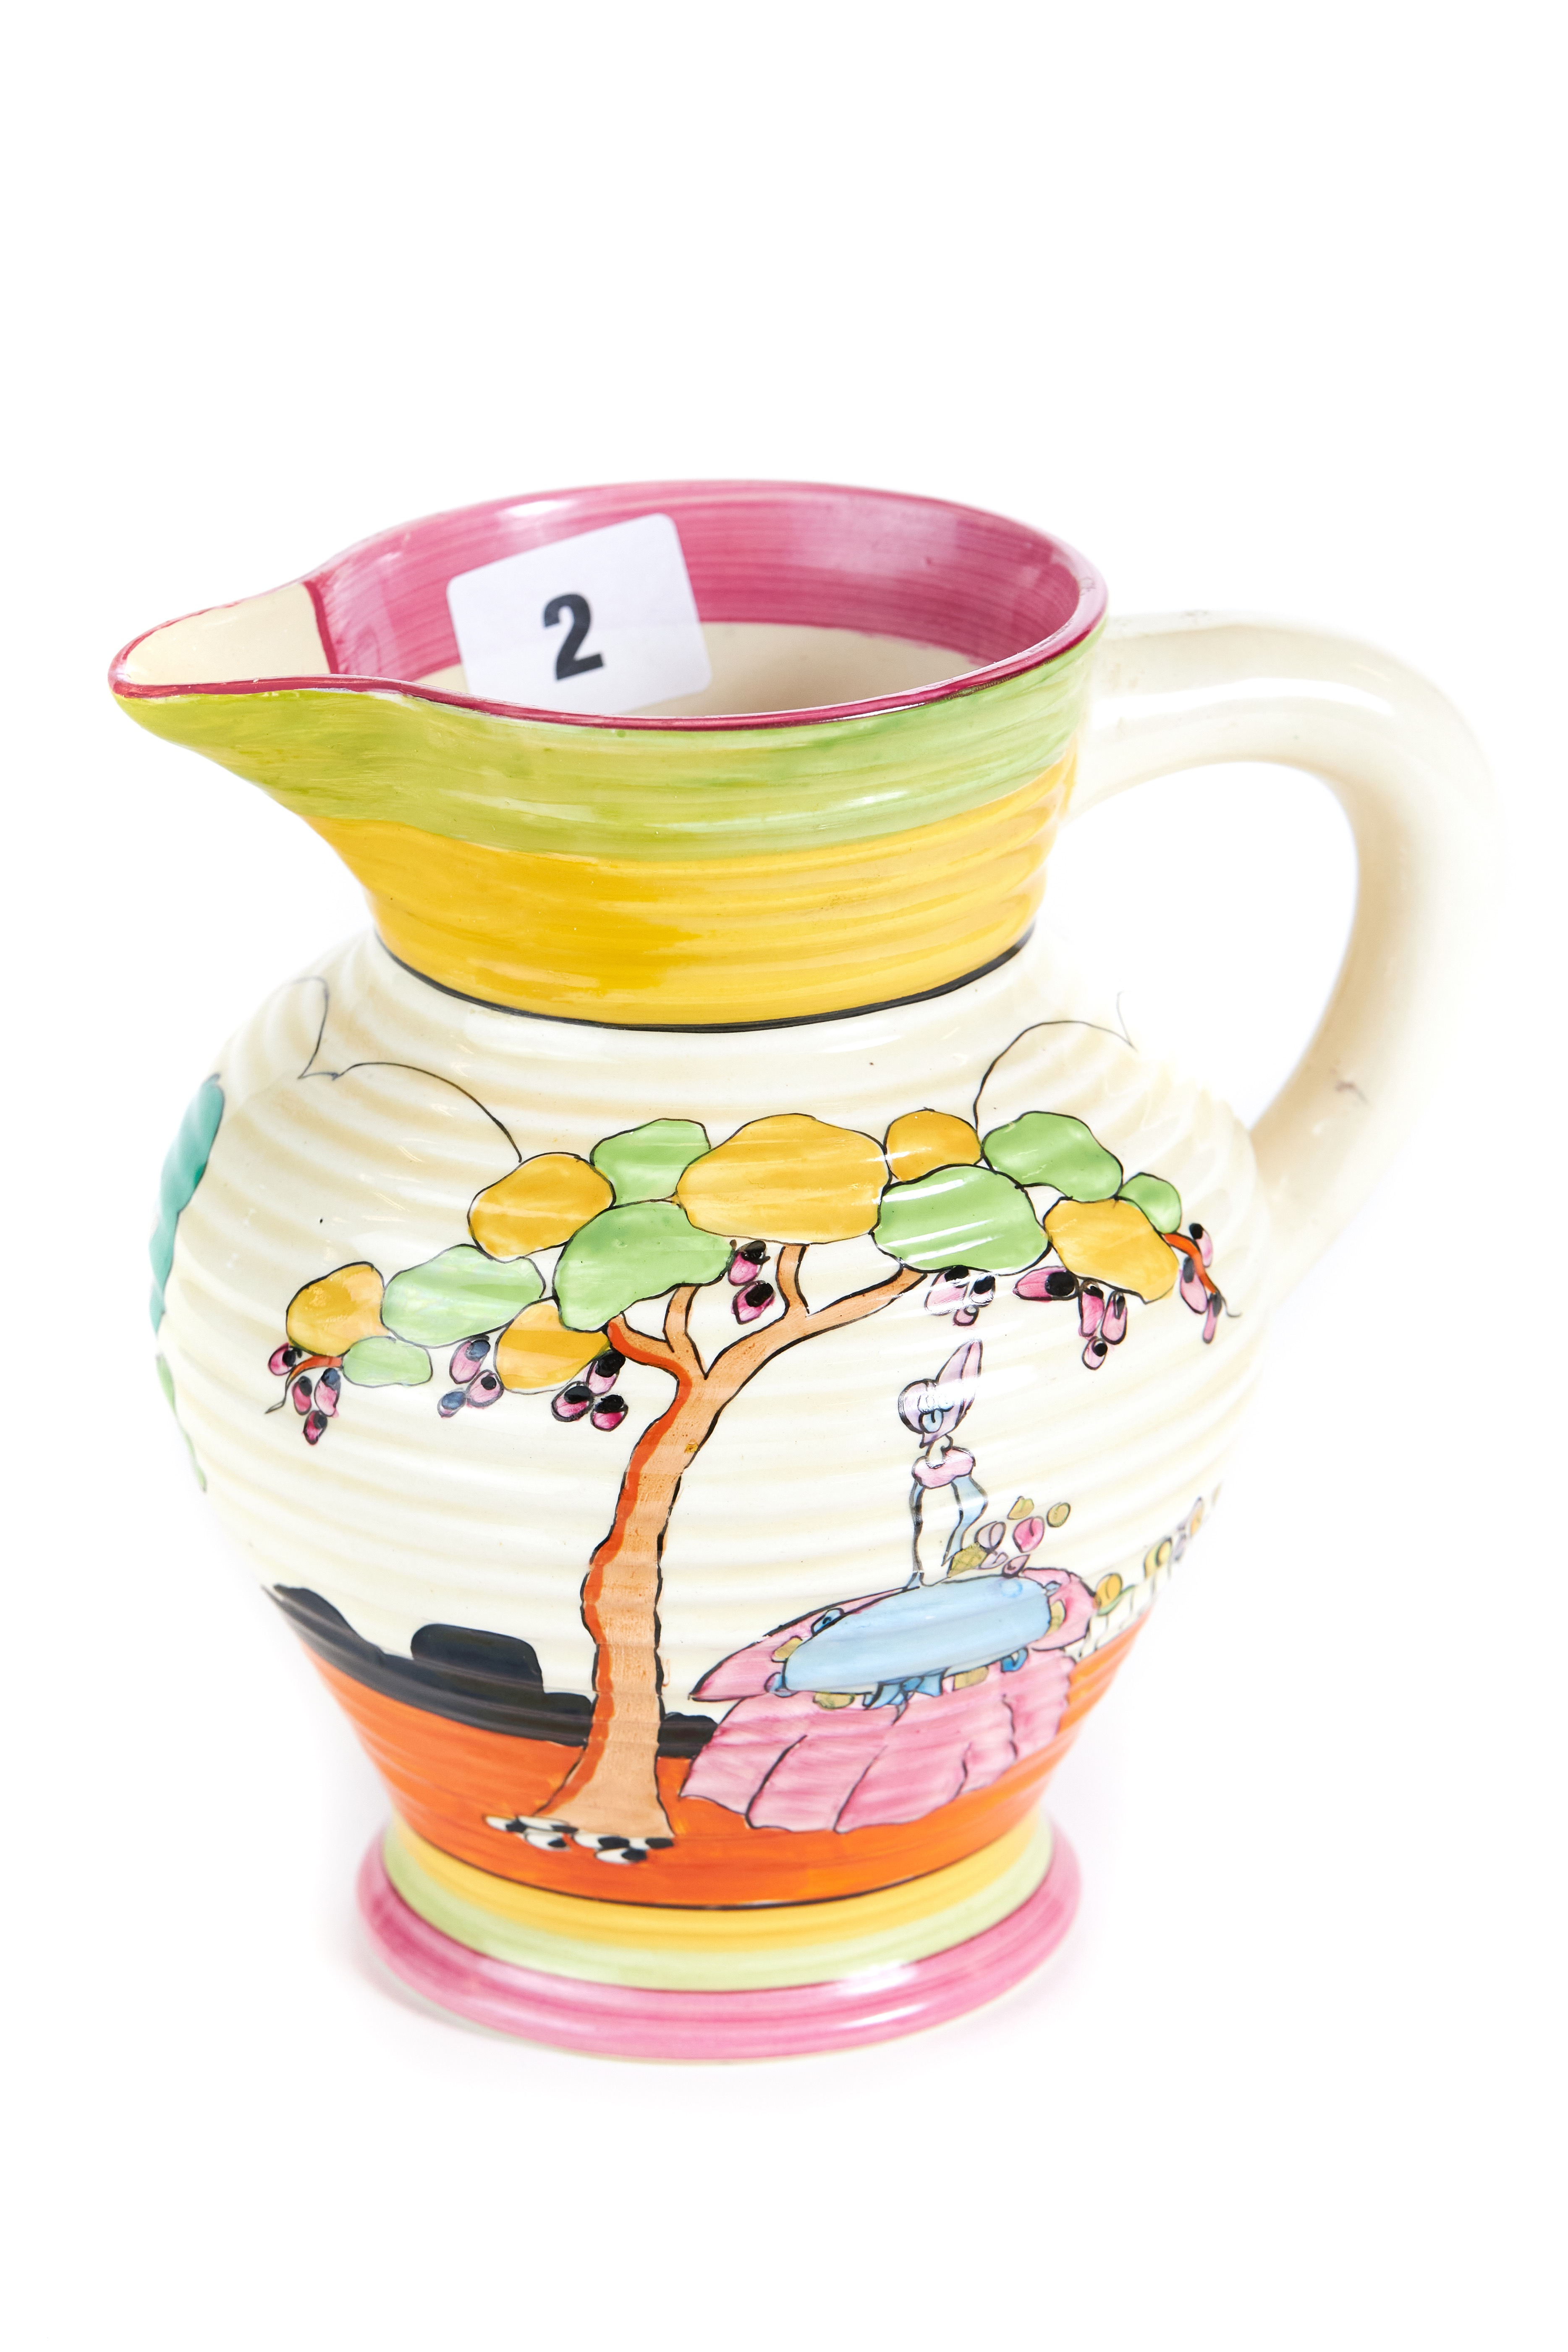 Lot 2 - A 20TH CENTURY CLARICE CLIFF NEWPORT POTTERY JUG hand painted with a crinoline lady in a garden